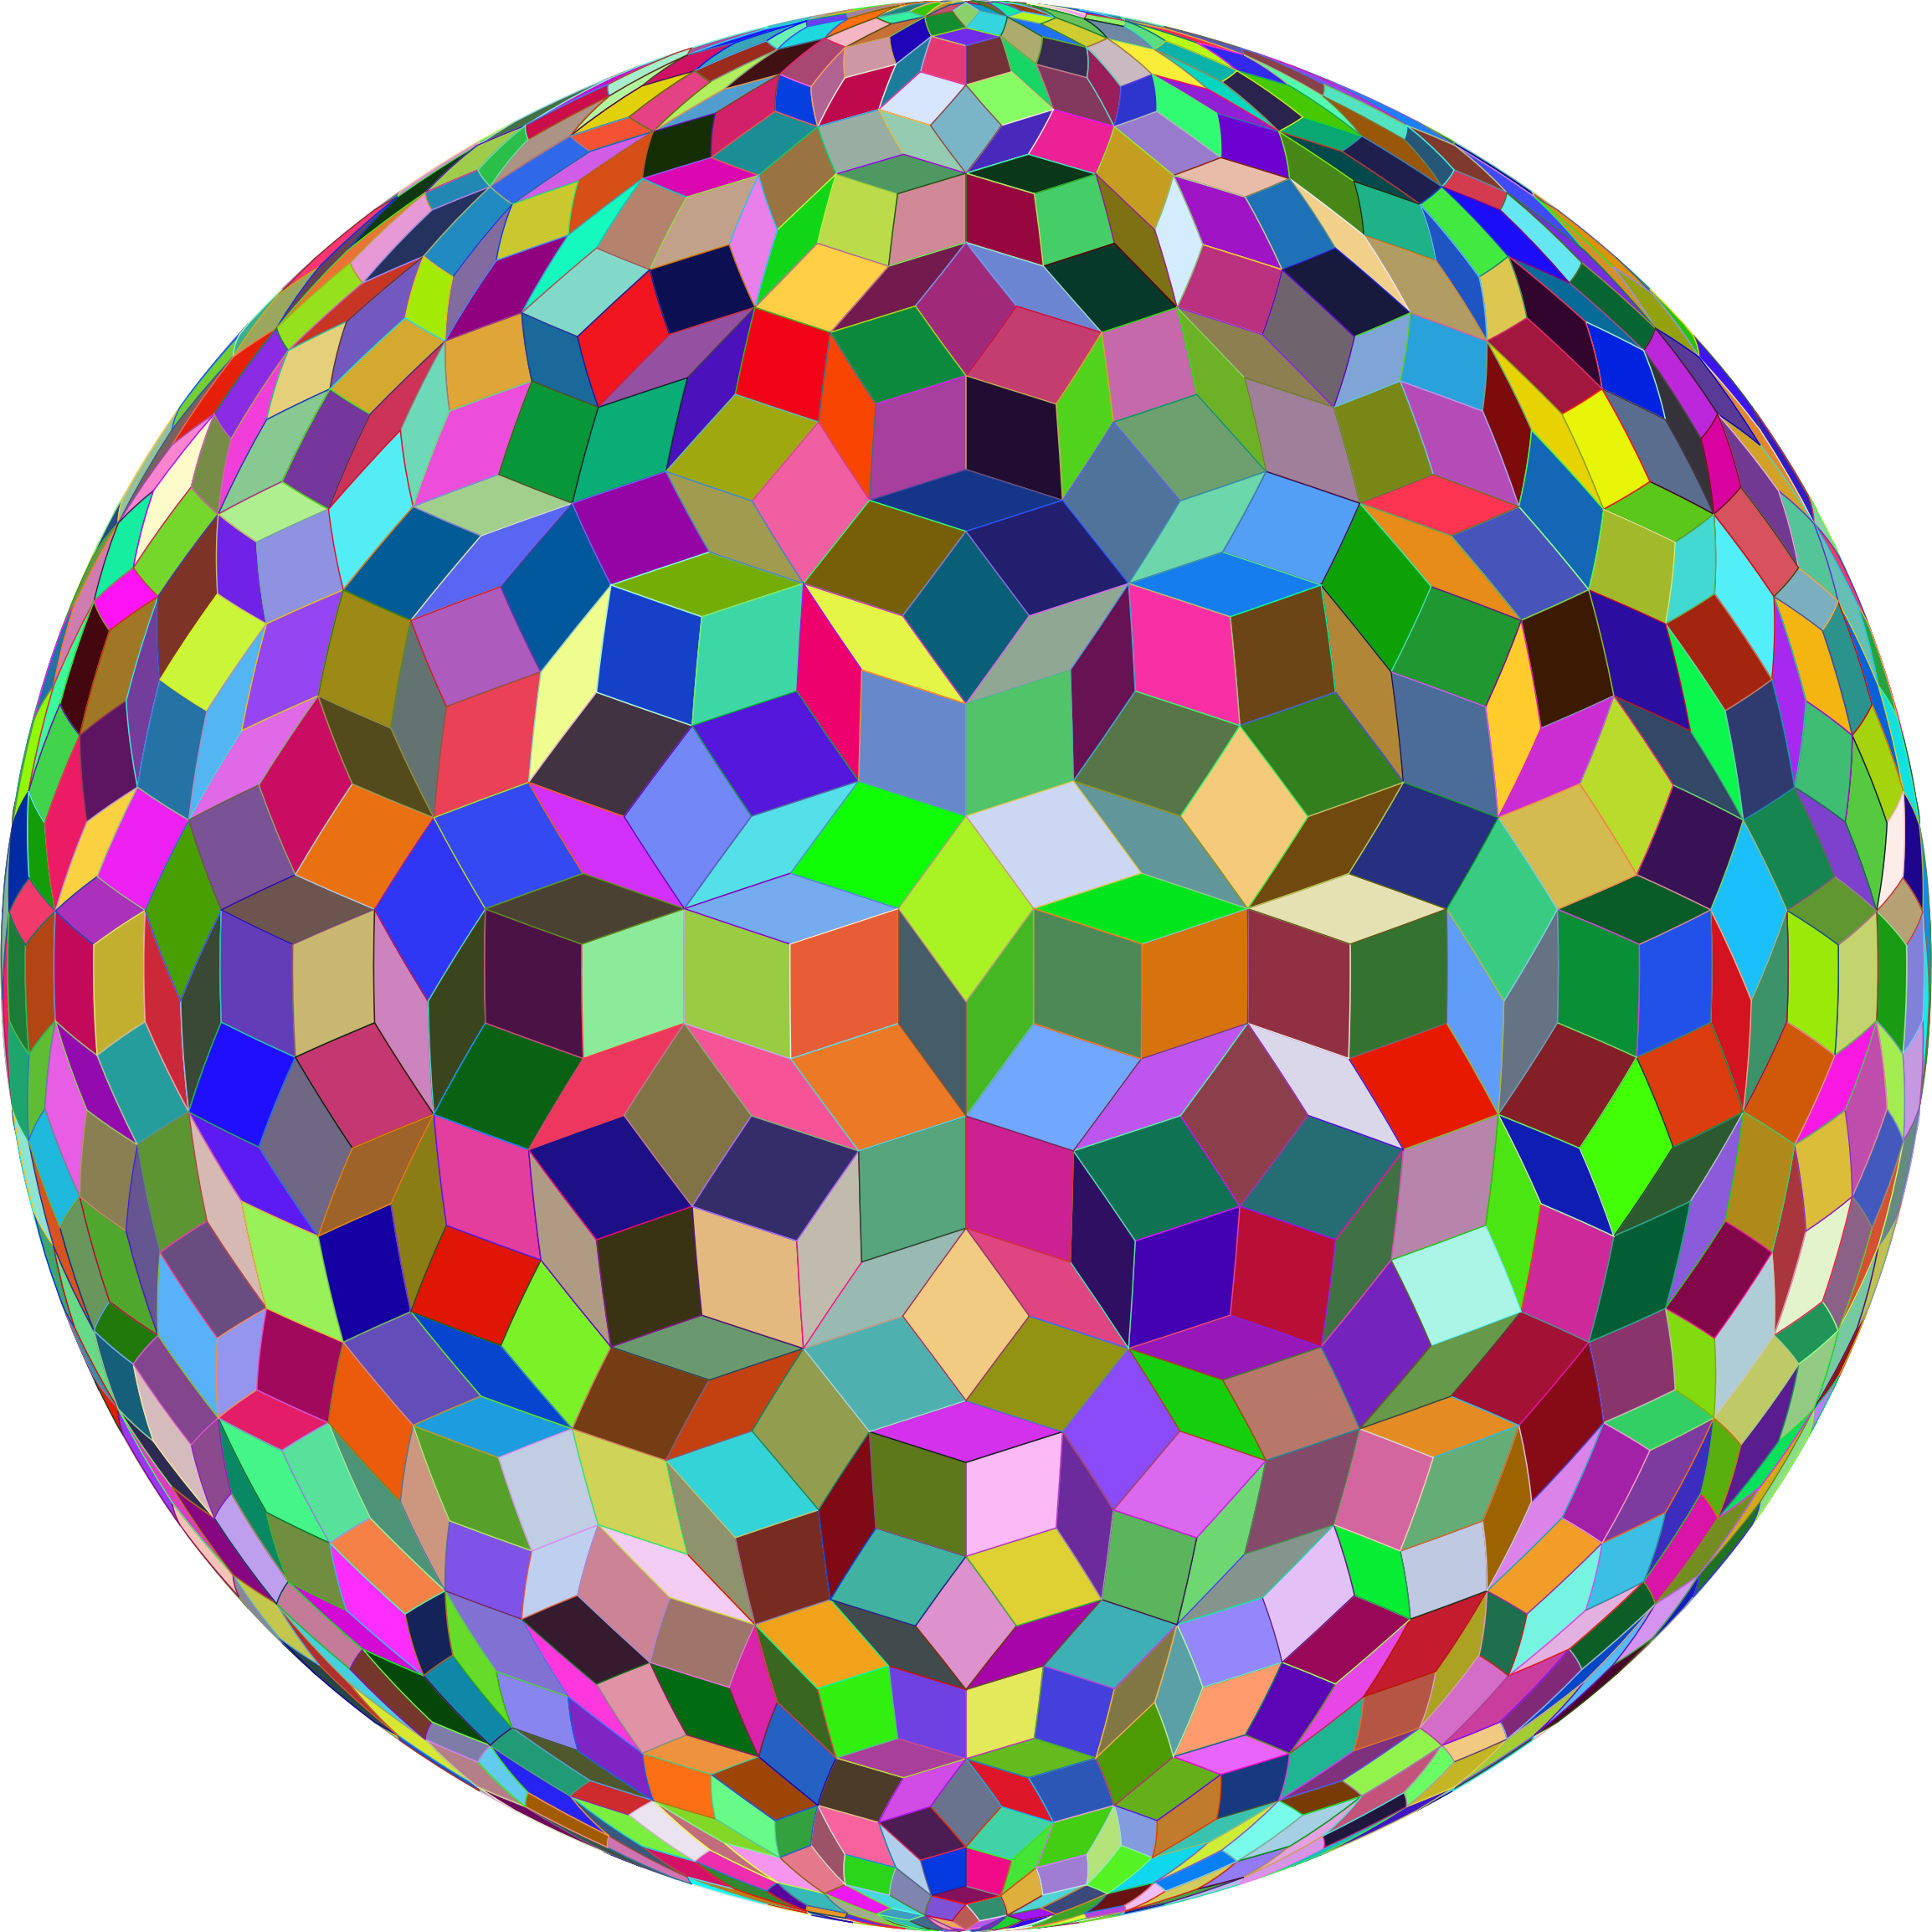 Prismatic Penrose Sphere by GDJ